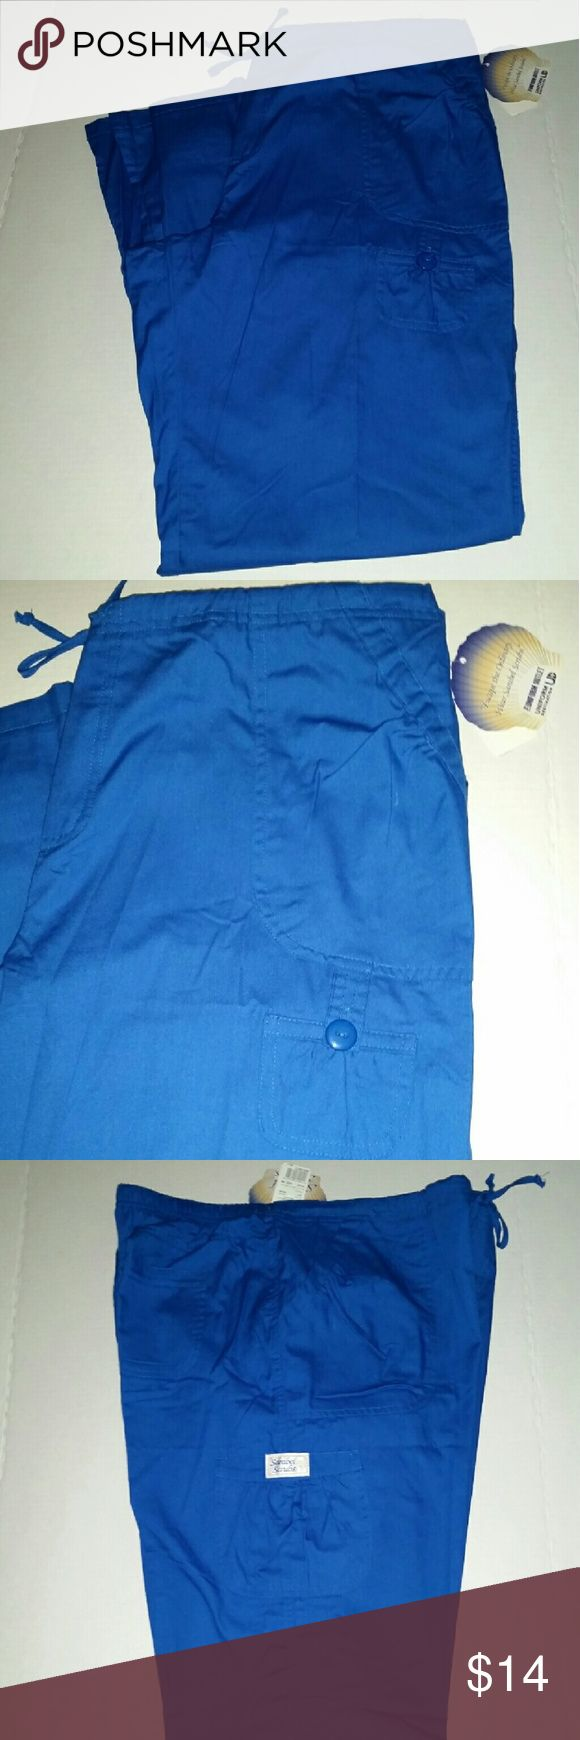 L NWT SANIBEL SCRUBS flare leg scrub pants blue Sanibel scrubs cute royal blue flare scrub pants Cute gathered detail around the pockets. Two back pockets. Drawstring waist with elastic Size Large 55% cotton, 45% polyester  Style# SA331 New with tags  *If interested I do have the matching top Size x-large & lab coat Size large also listed.* sanibel scrubs  Pants